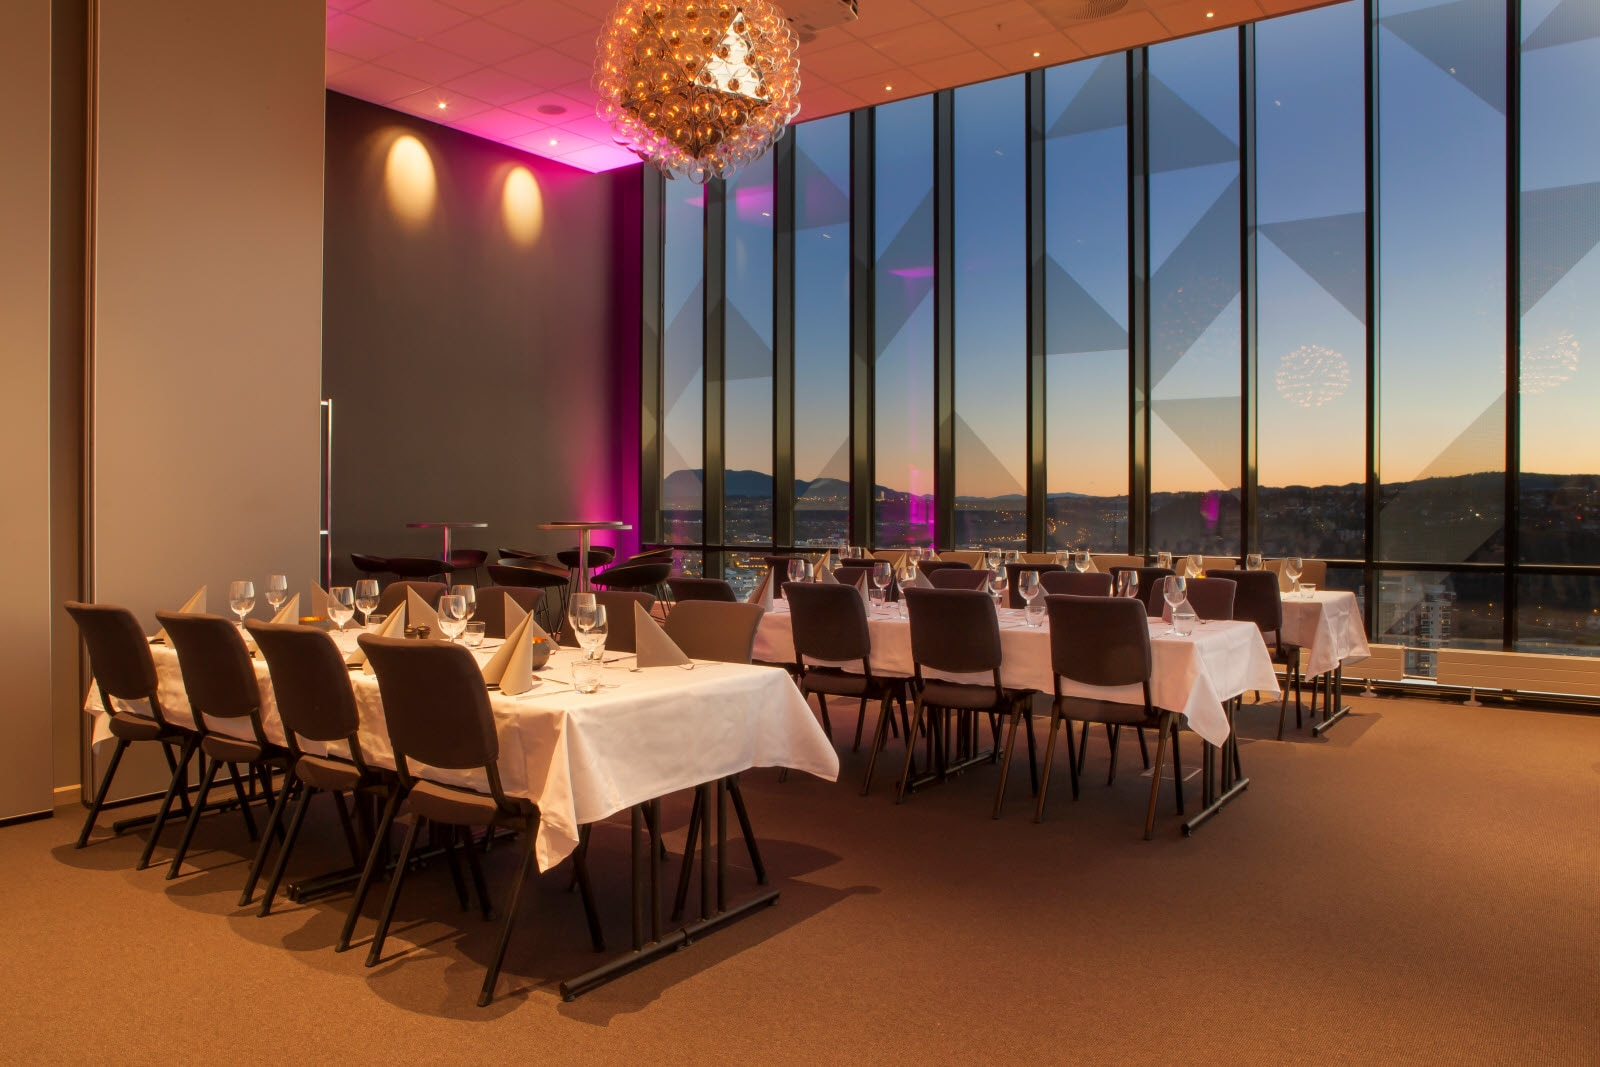 Scandic Lerkendal, meeting room, conference, utsikten, class, view, event, wedding